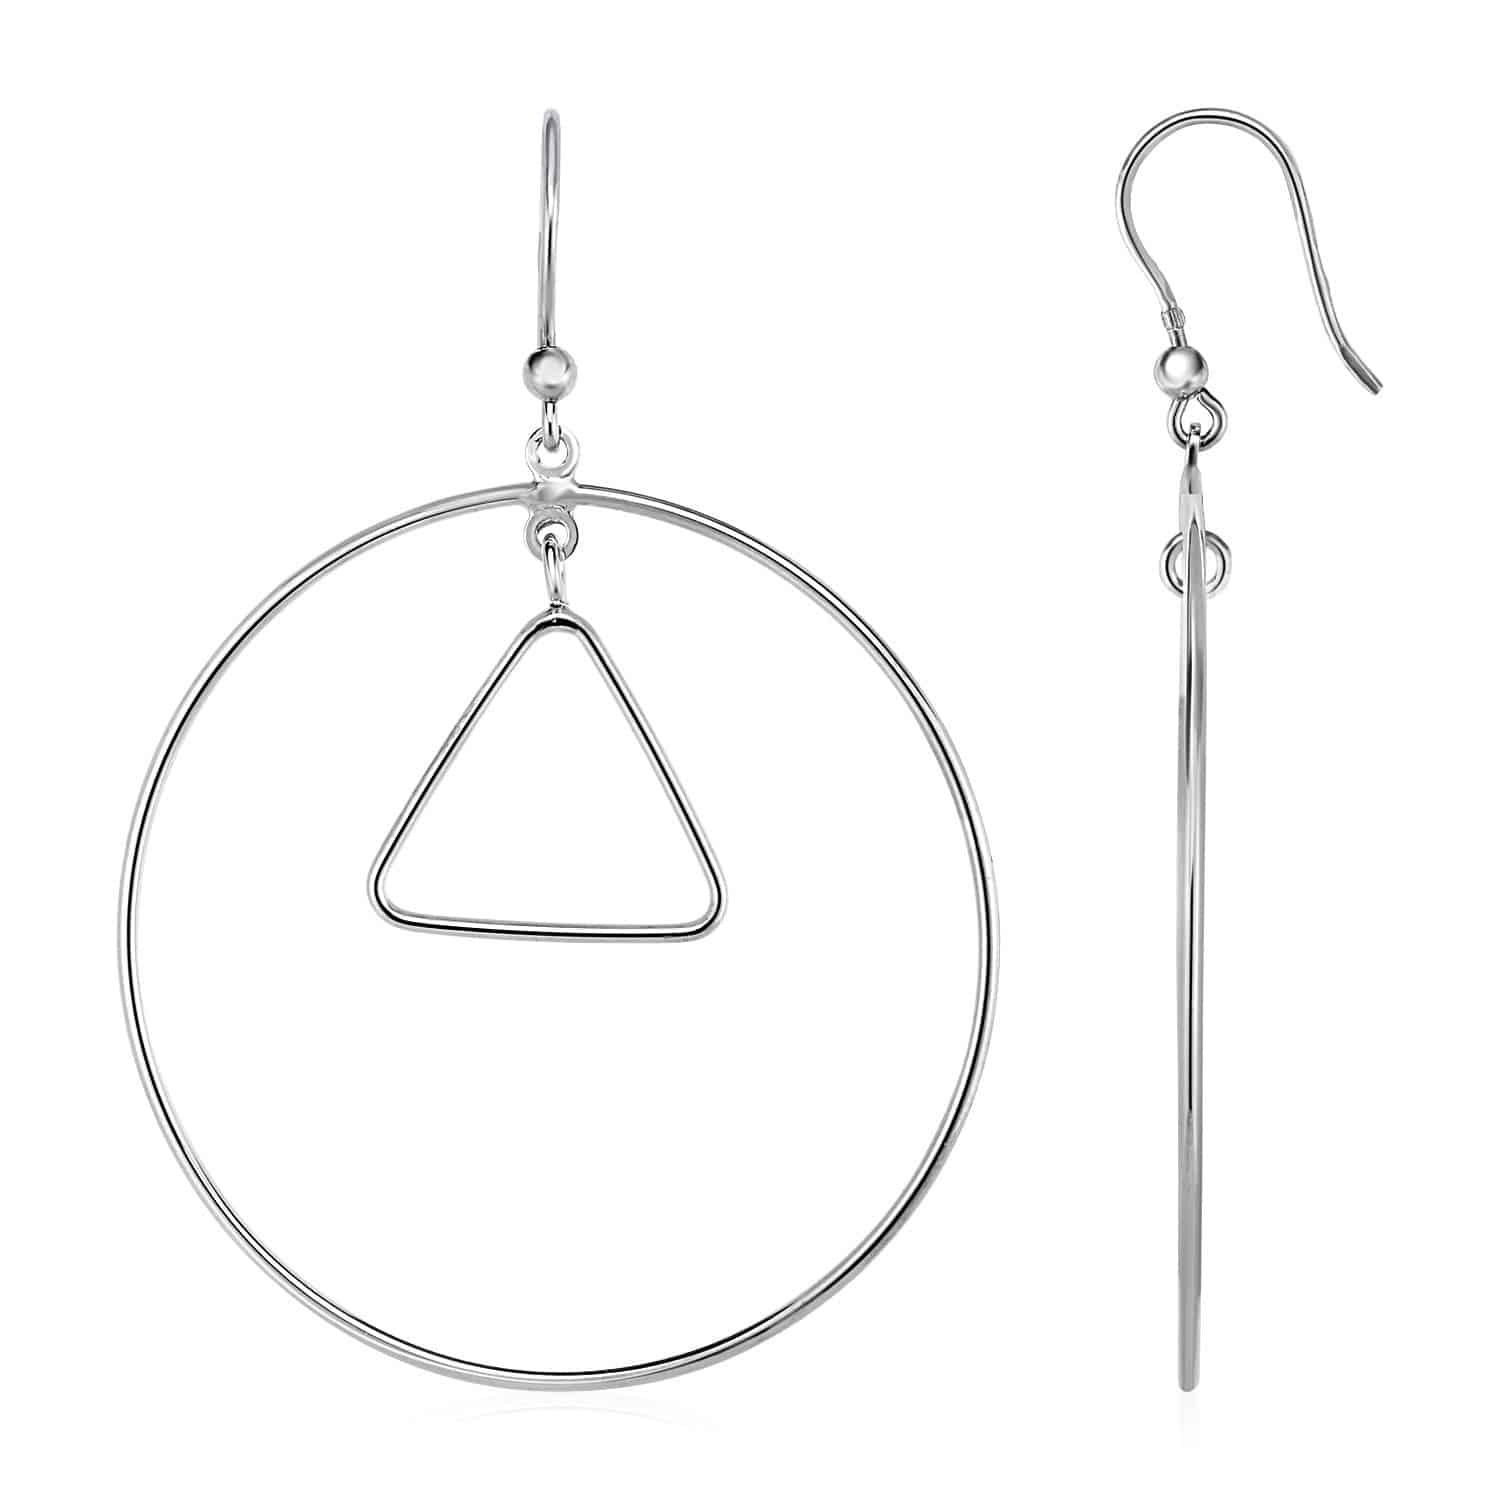 Earrings with Polished Circle and Triangle Drops in Sterling Silver